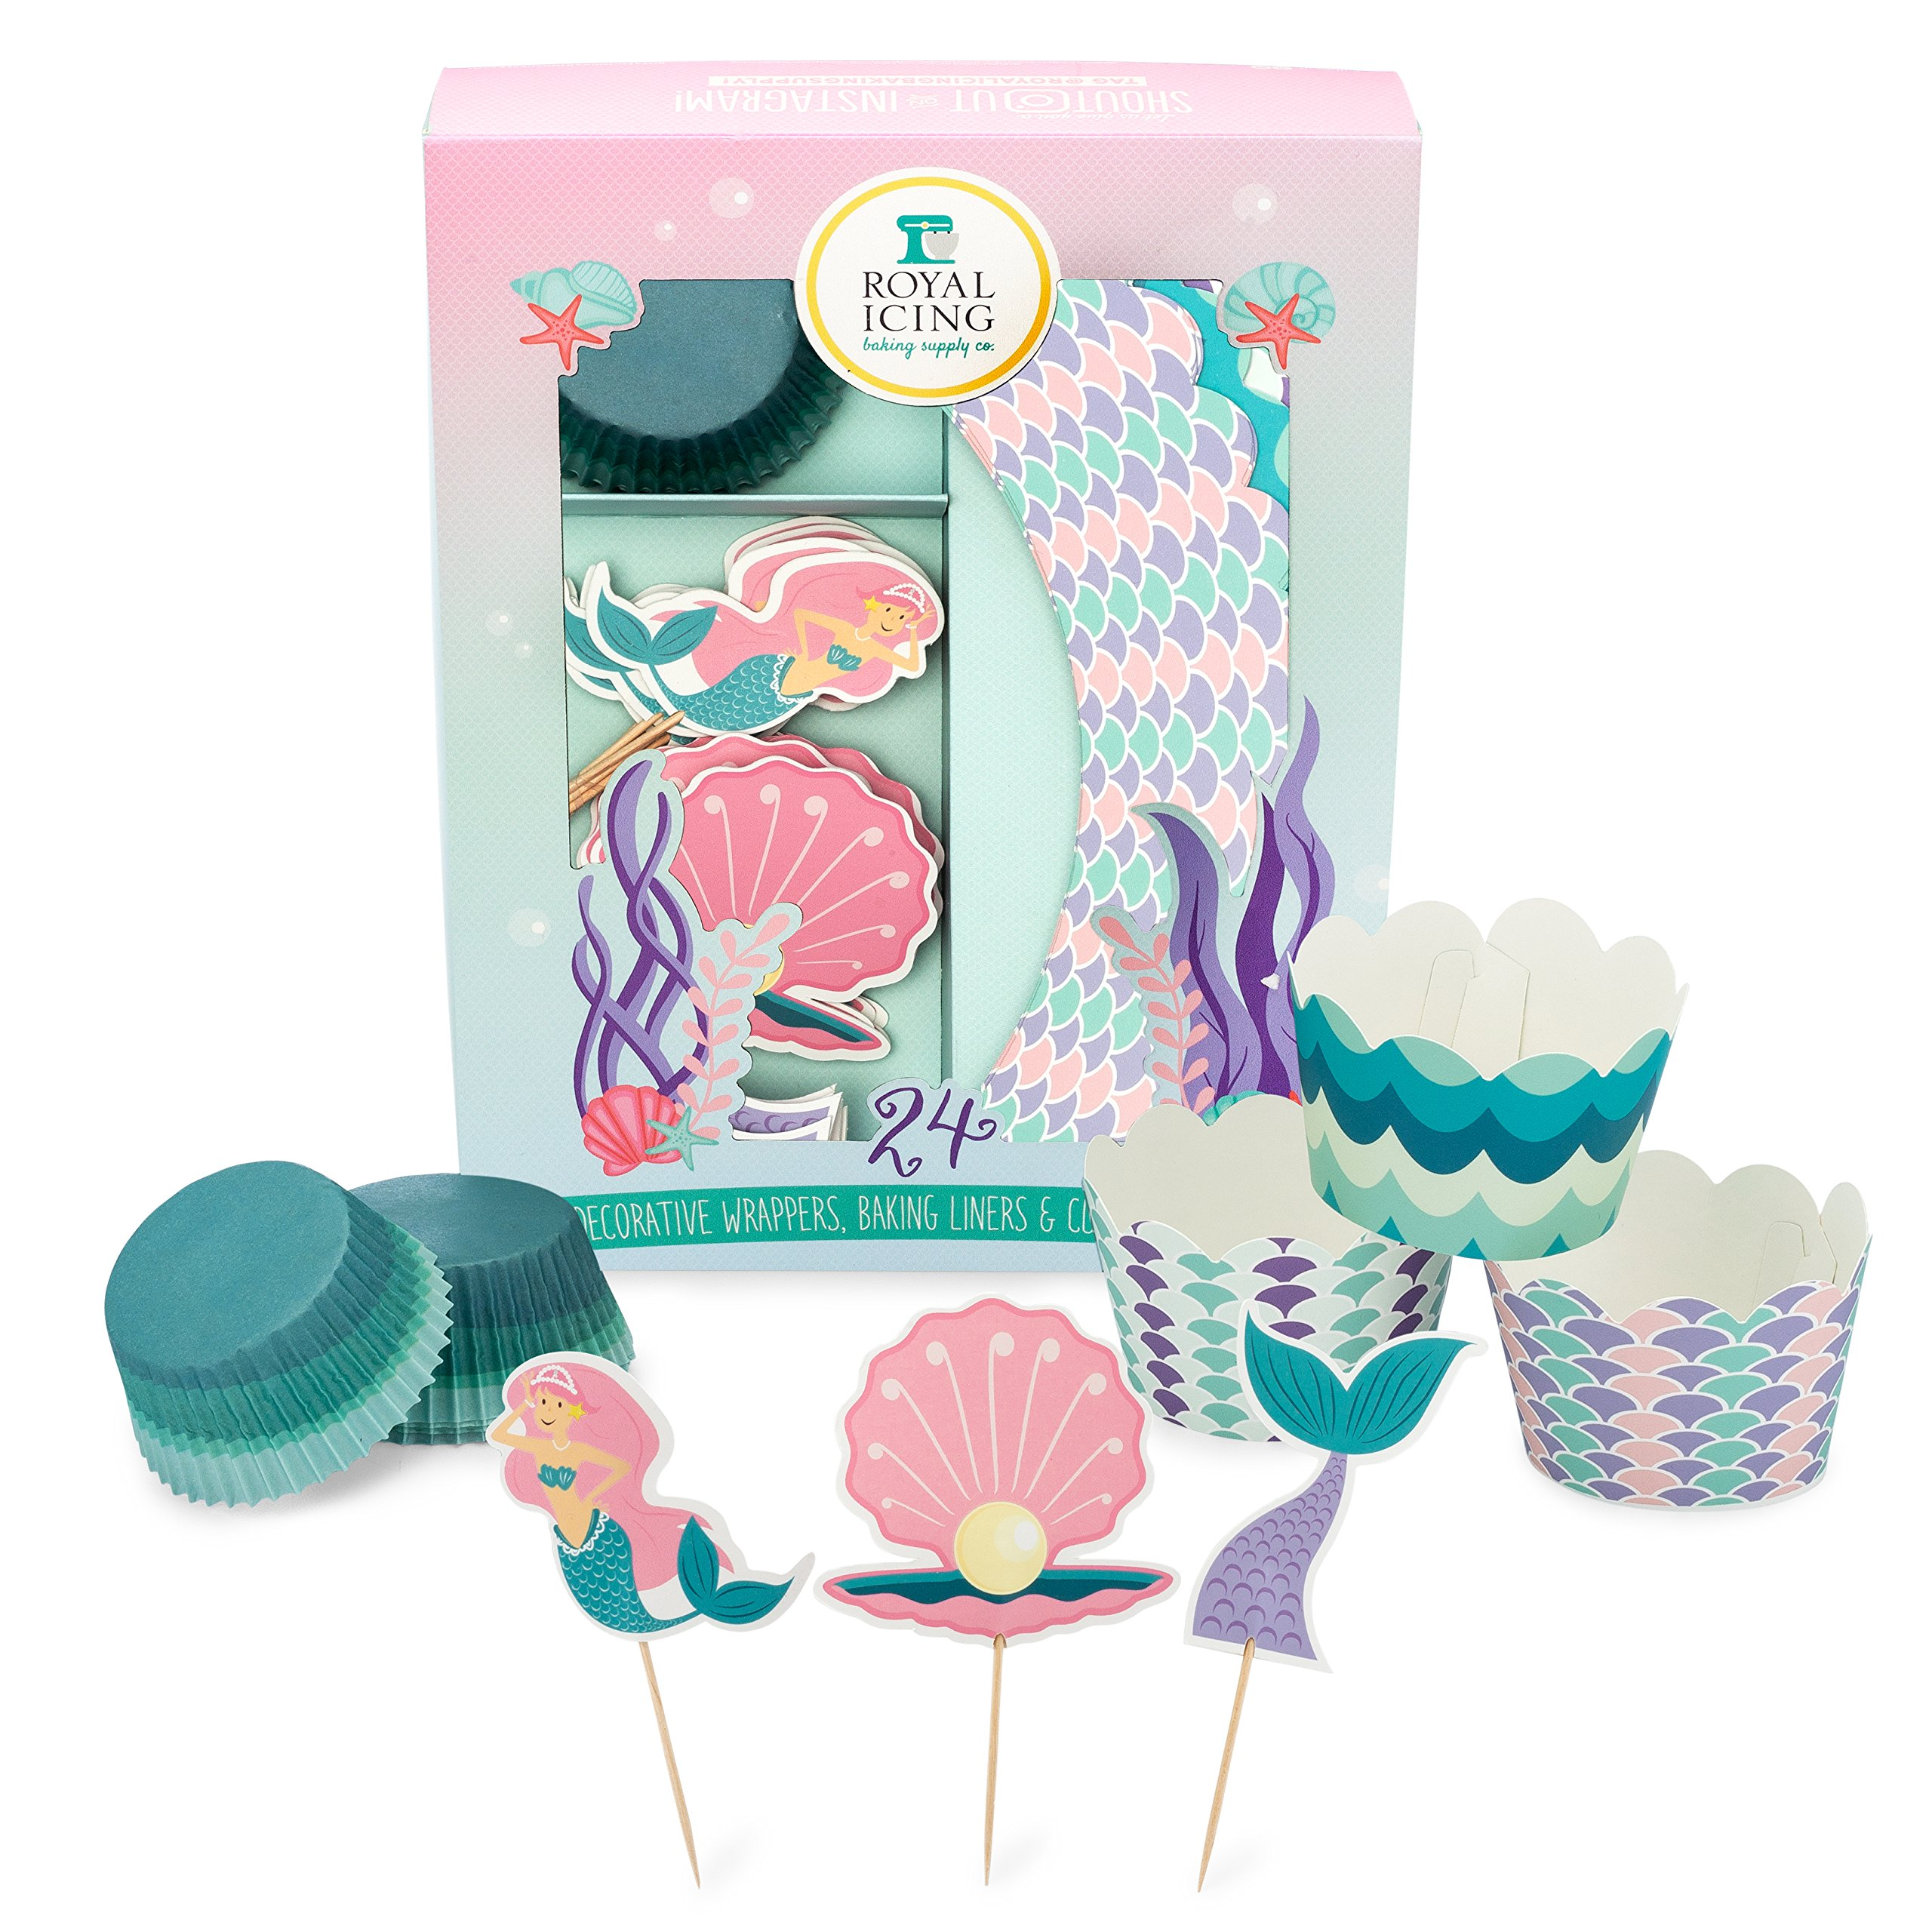 Mermaid Cupcake Decorating Kit for Kids Birthday Parties and Baby Showers - Includes Baking Liners, Decorative Cupcake Wrappers, and Toppers - For Decorating 24 Cupcakes by Royal Icing Baking Supply Co.